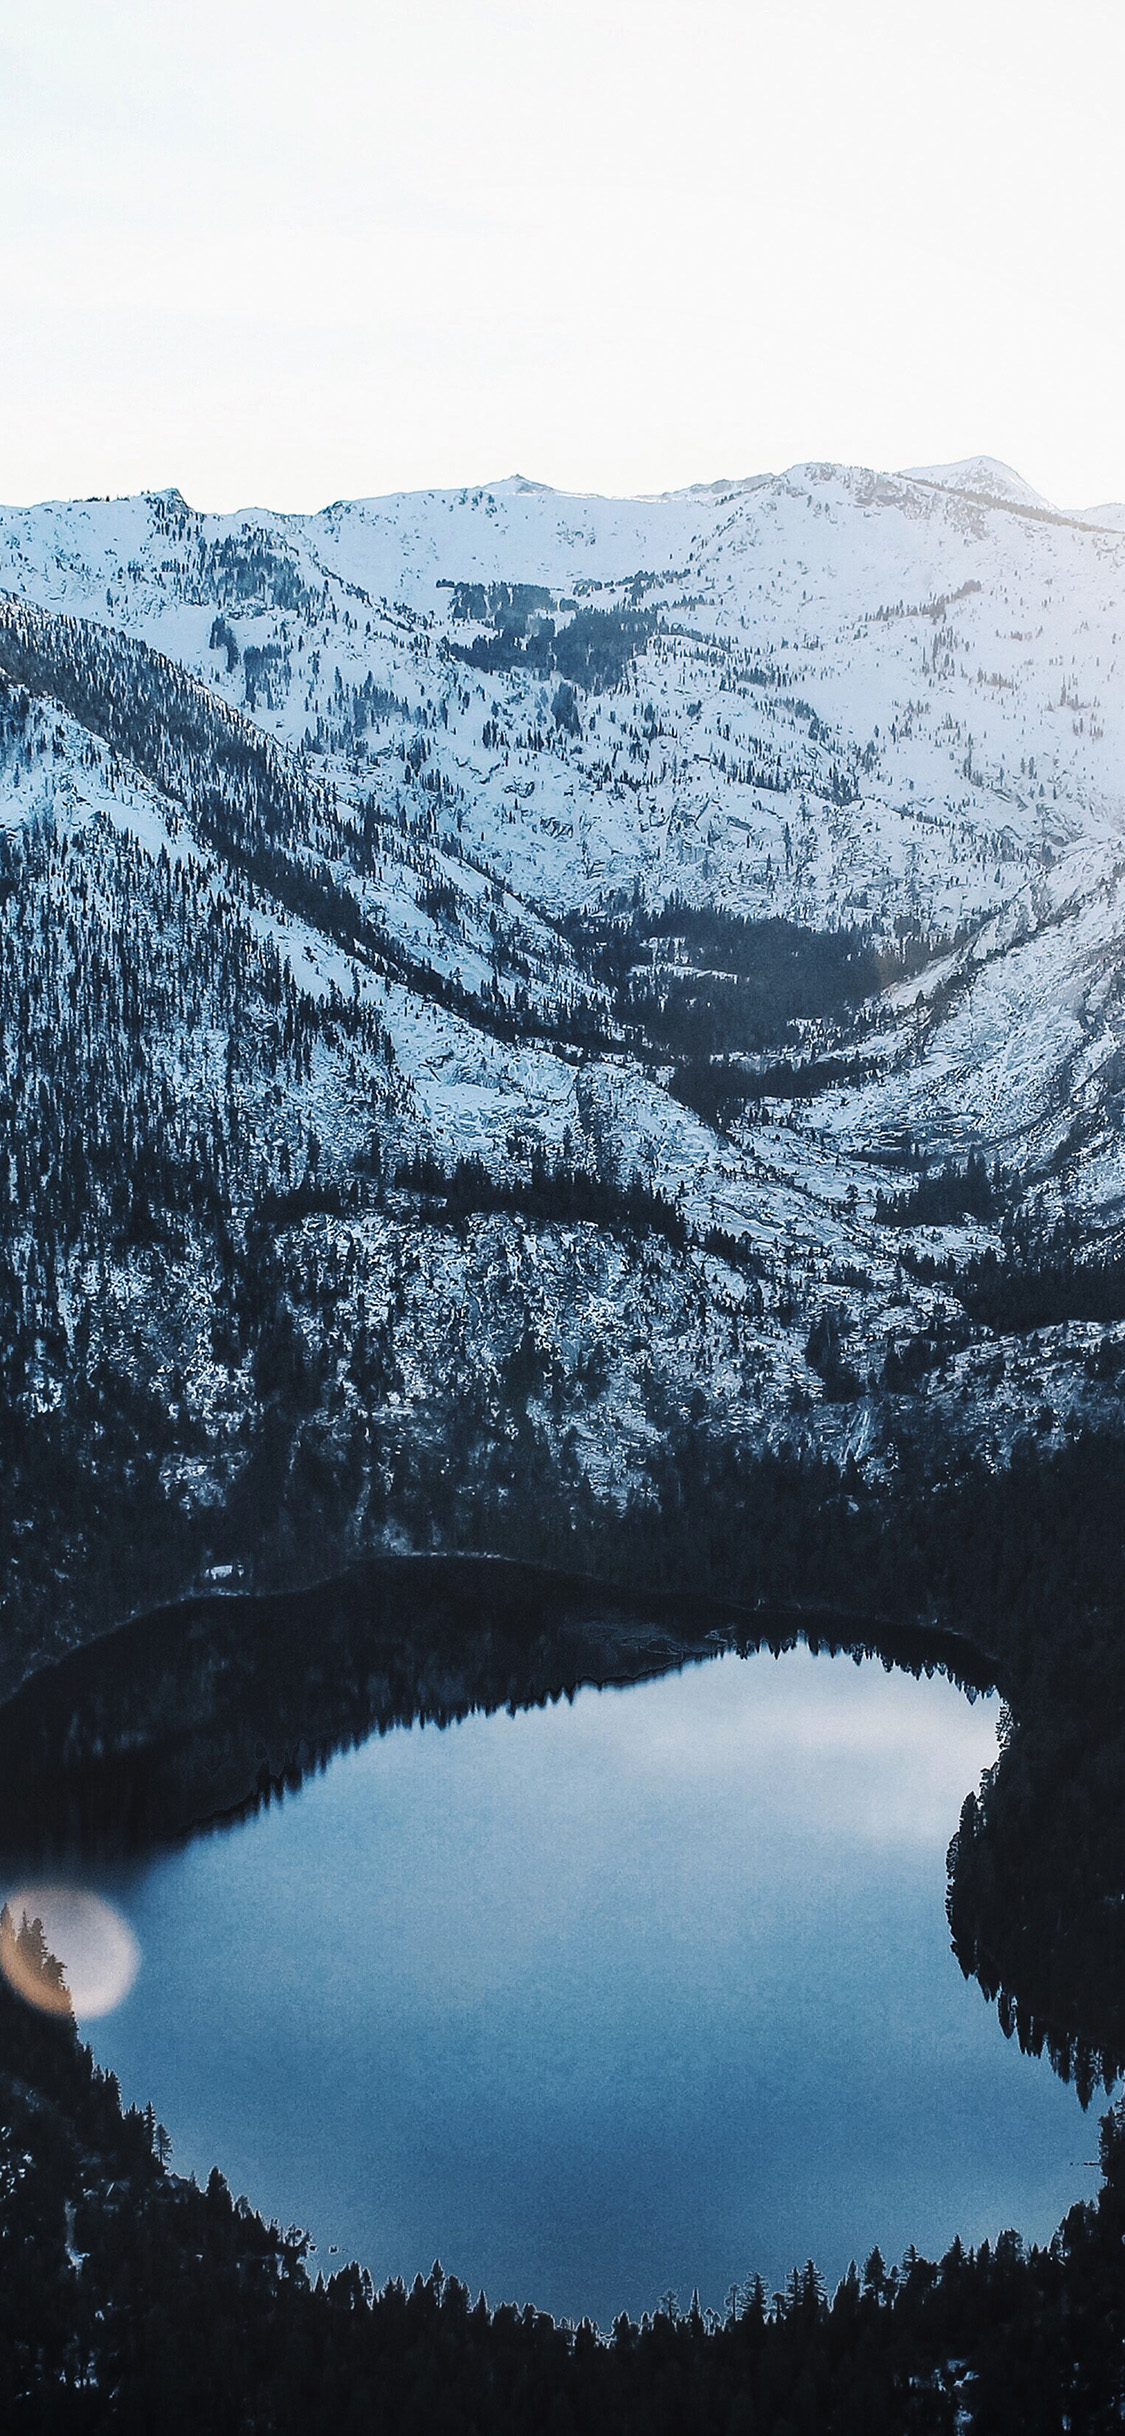 Iphone11papers Com Iphone11 Wallpaper Oe95 Nature Cold Winter Lake Mountain